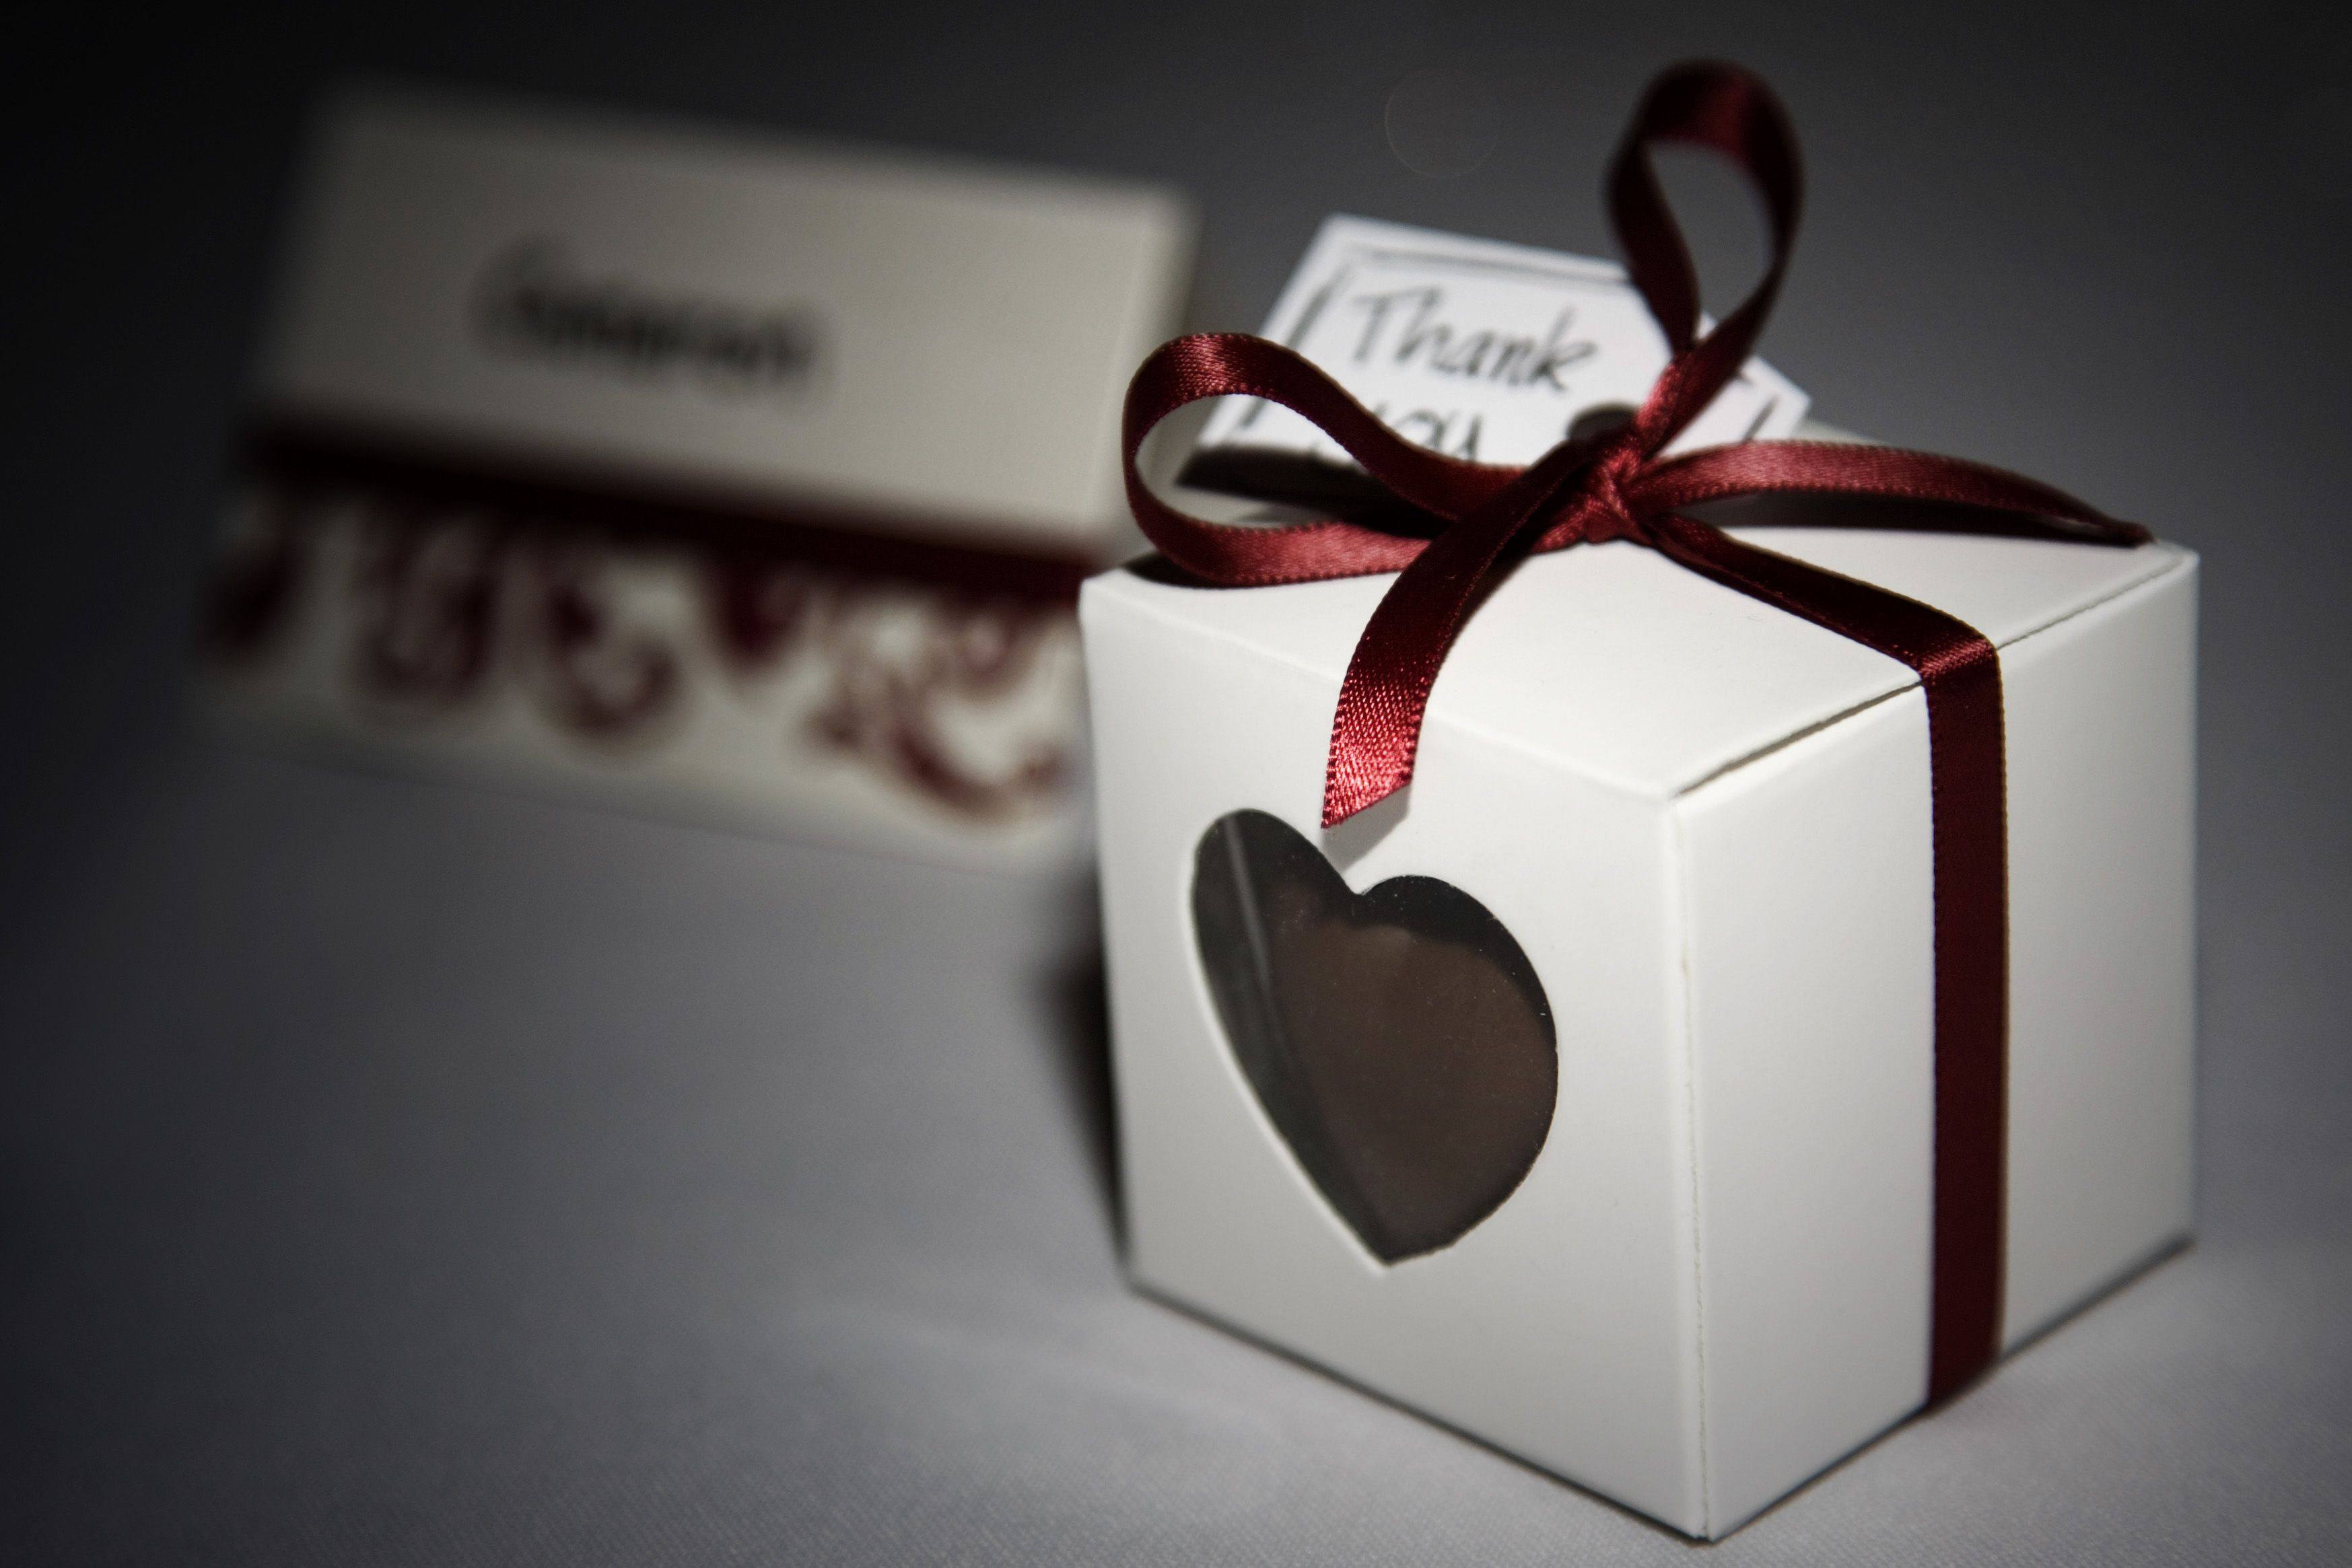 Diy wedding favours cheap white boxes from ebay fill with any wedding stuff diy wedding favours cheap white boxes from ebay fill with any chocolatetreat ribbon from junglespirit Choice Image